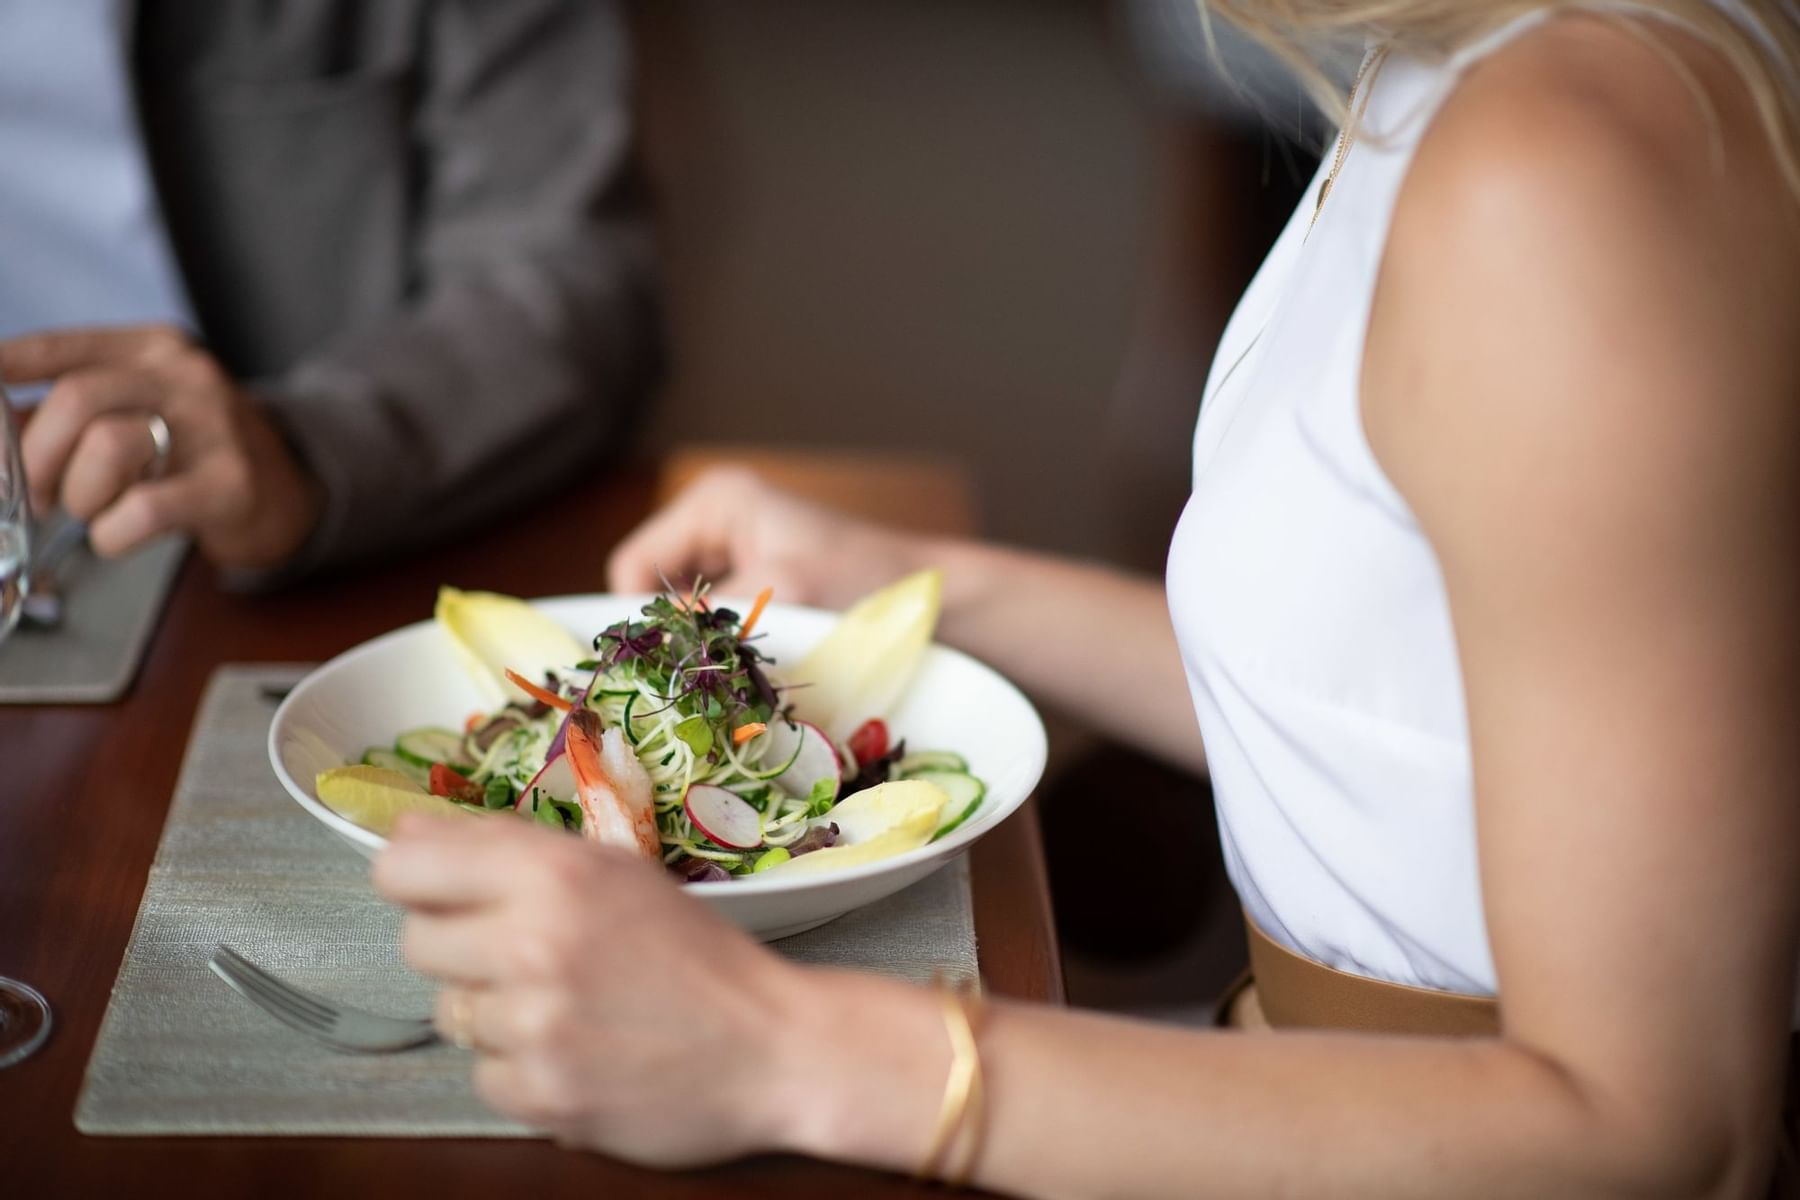 Young lady eating a salad